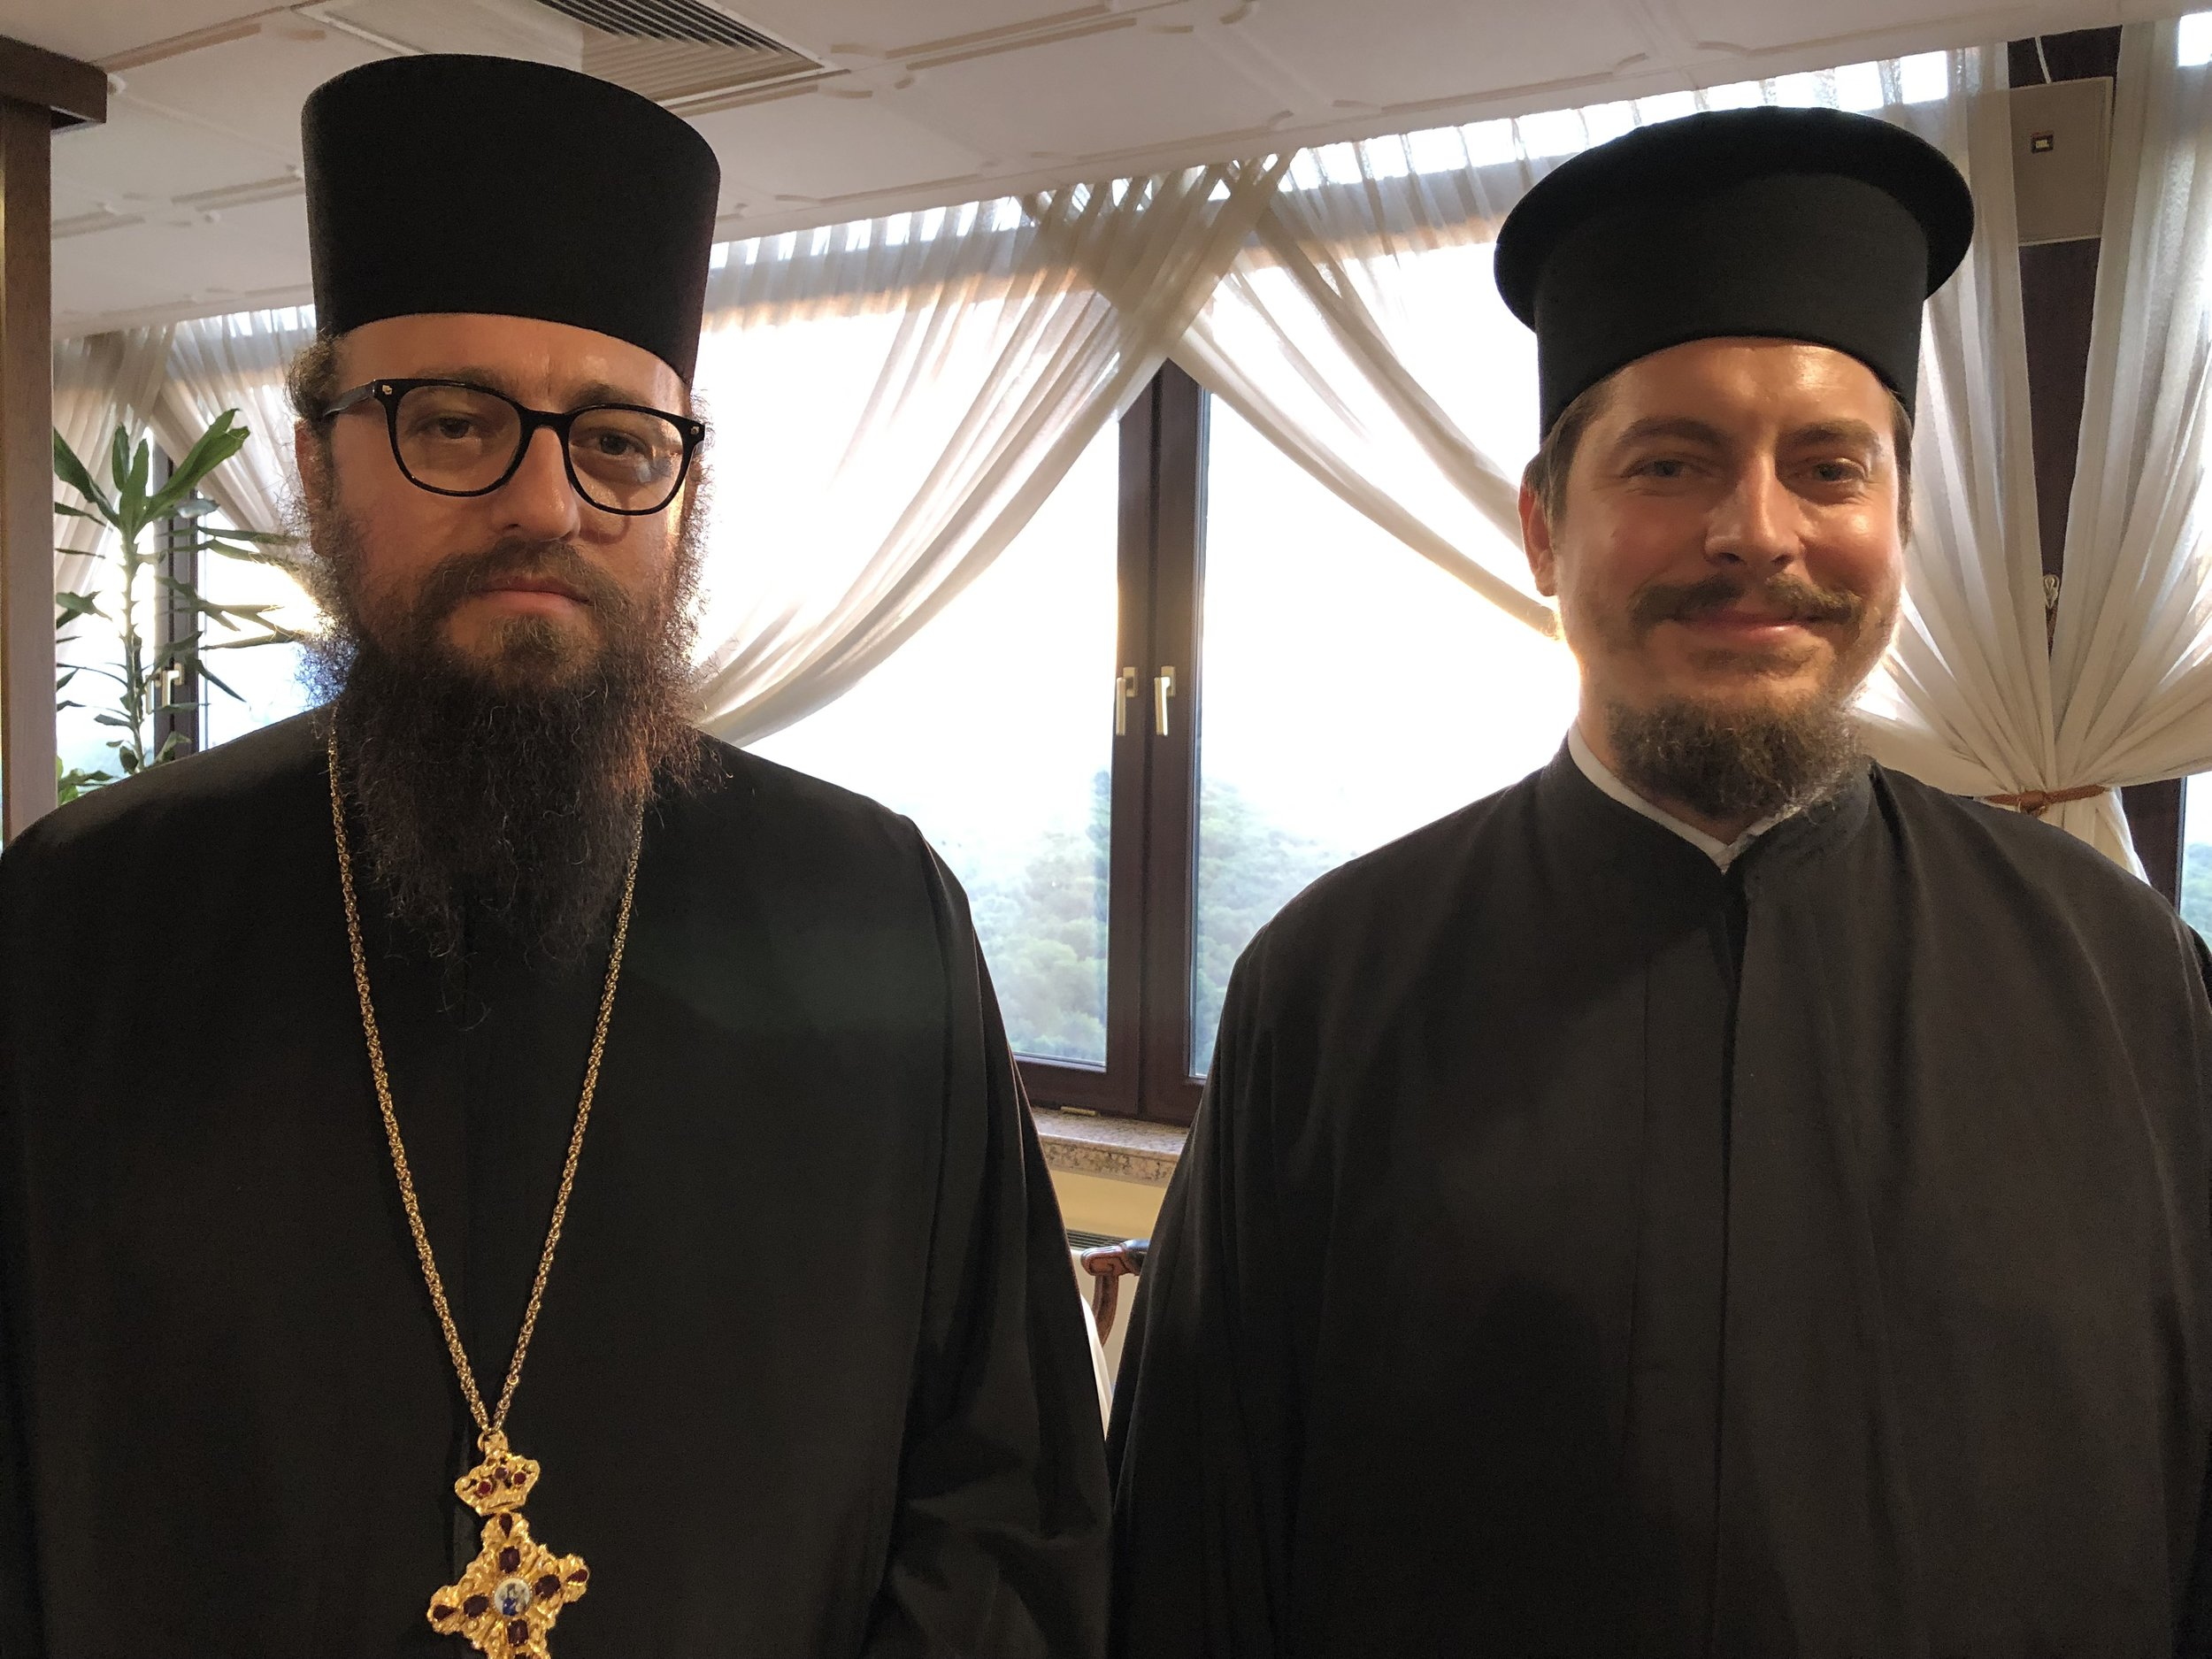 Archimandrite Pahomii, rector of the Sofia Theological Seminary (a school for priests) on the left with his colleague.